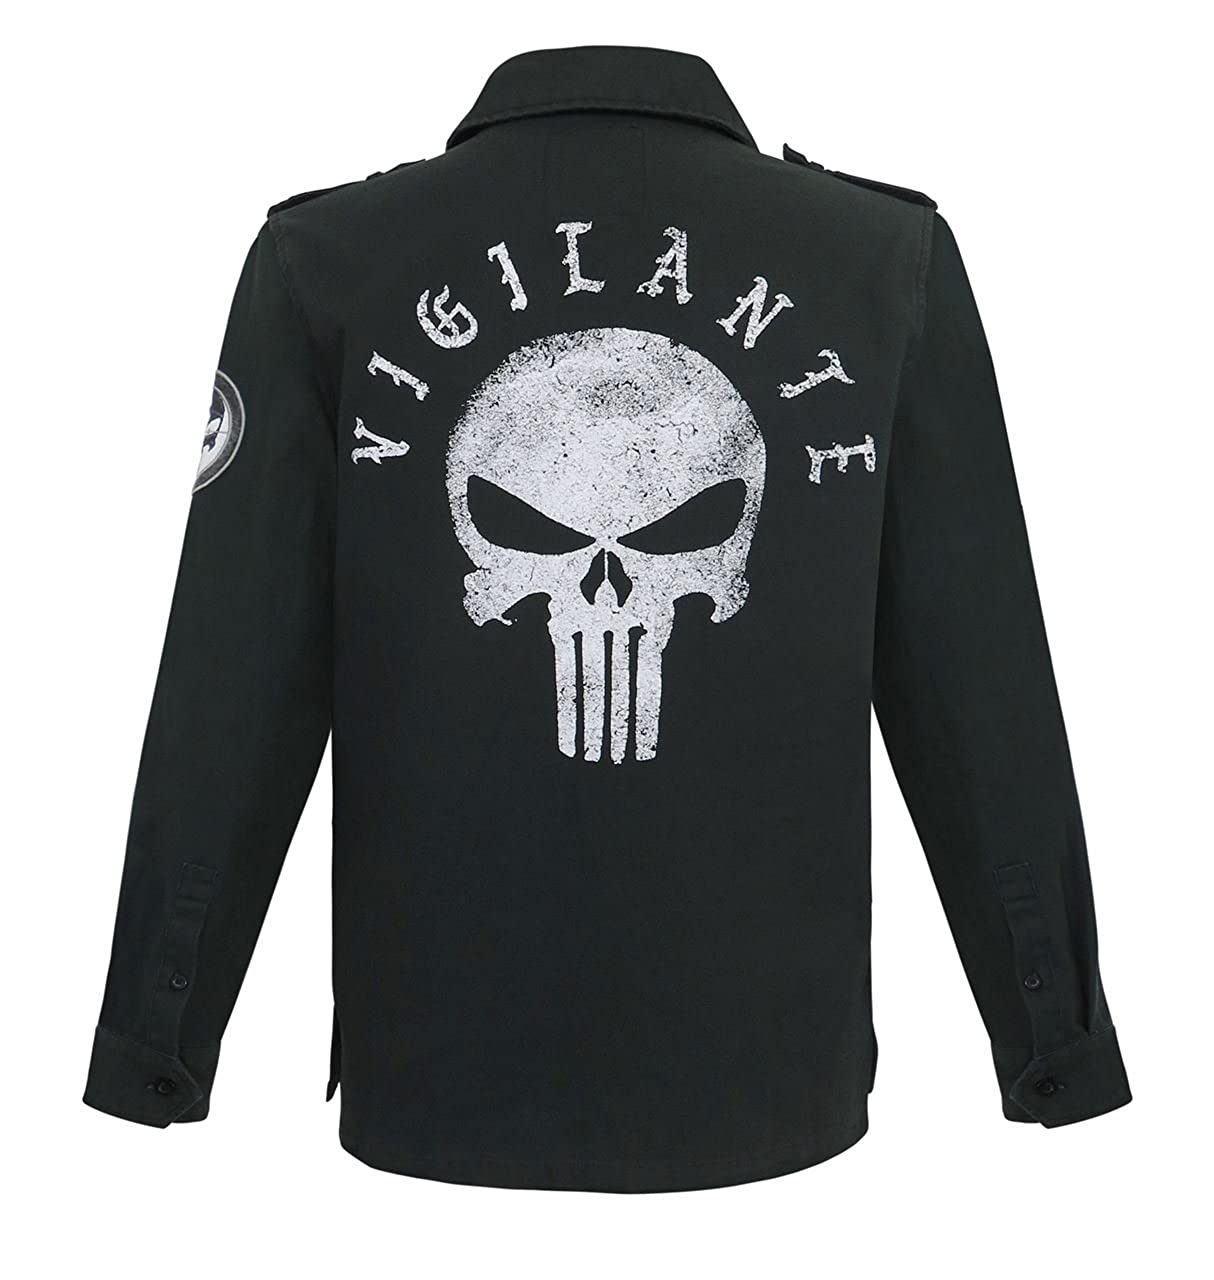 Bioworld Merchandising / Independent Sales Men's Punisher Vigilante Utility Jacket